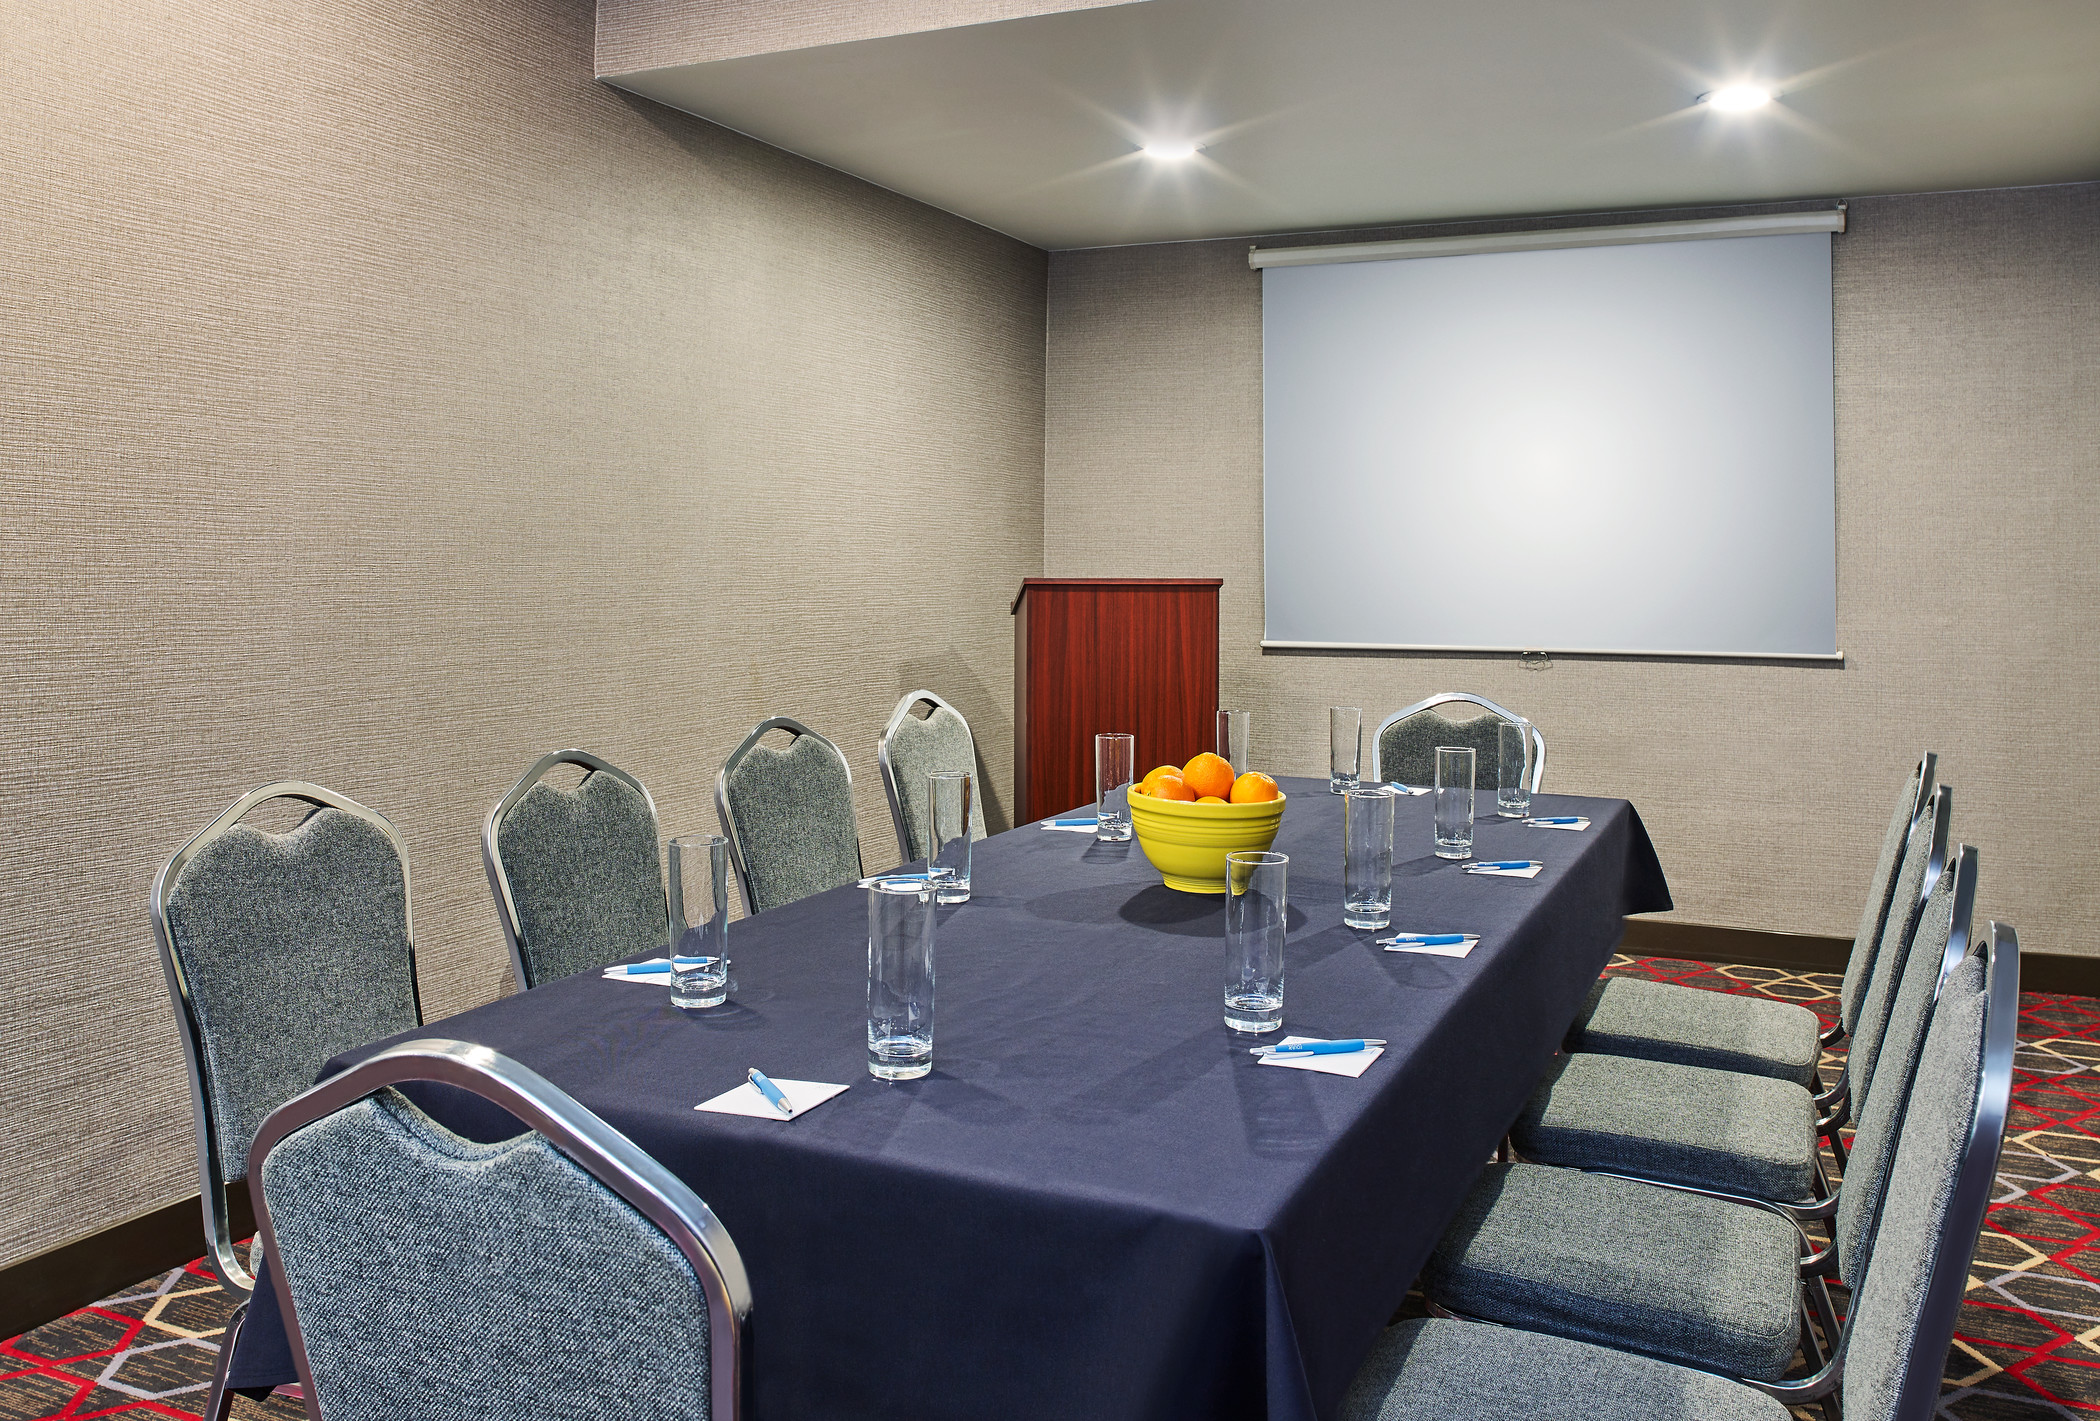 https://www.hotelsbyday.com/_data/default-hotel_image/2/10073/fpt4629mf-261188-wasatch-meeting-room-med.jpg